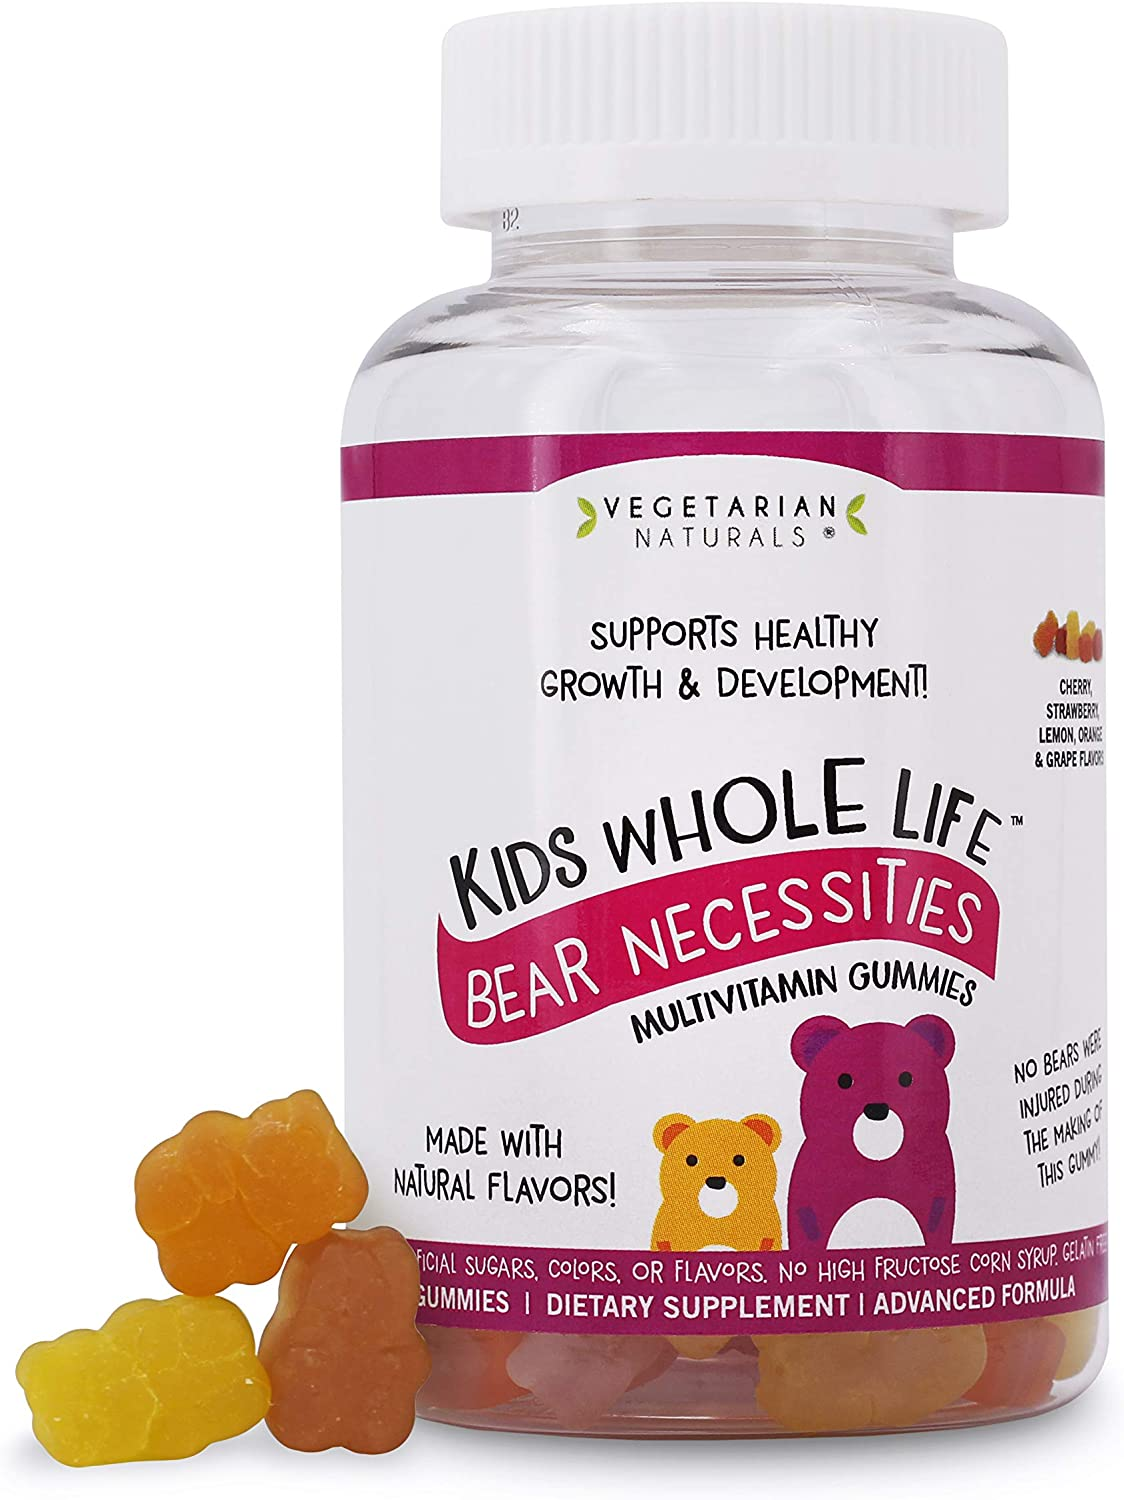 Vegetarian Naturals® Kids Whole Life™ Bear Necessities Multivitamin Gummies Free from Artificial Sugars, Colors & Flavors or High- Fructose Corn Syrup!